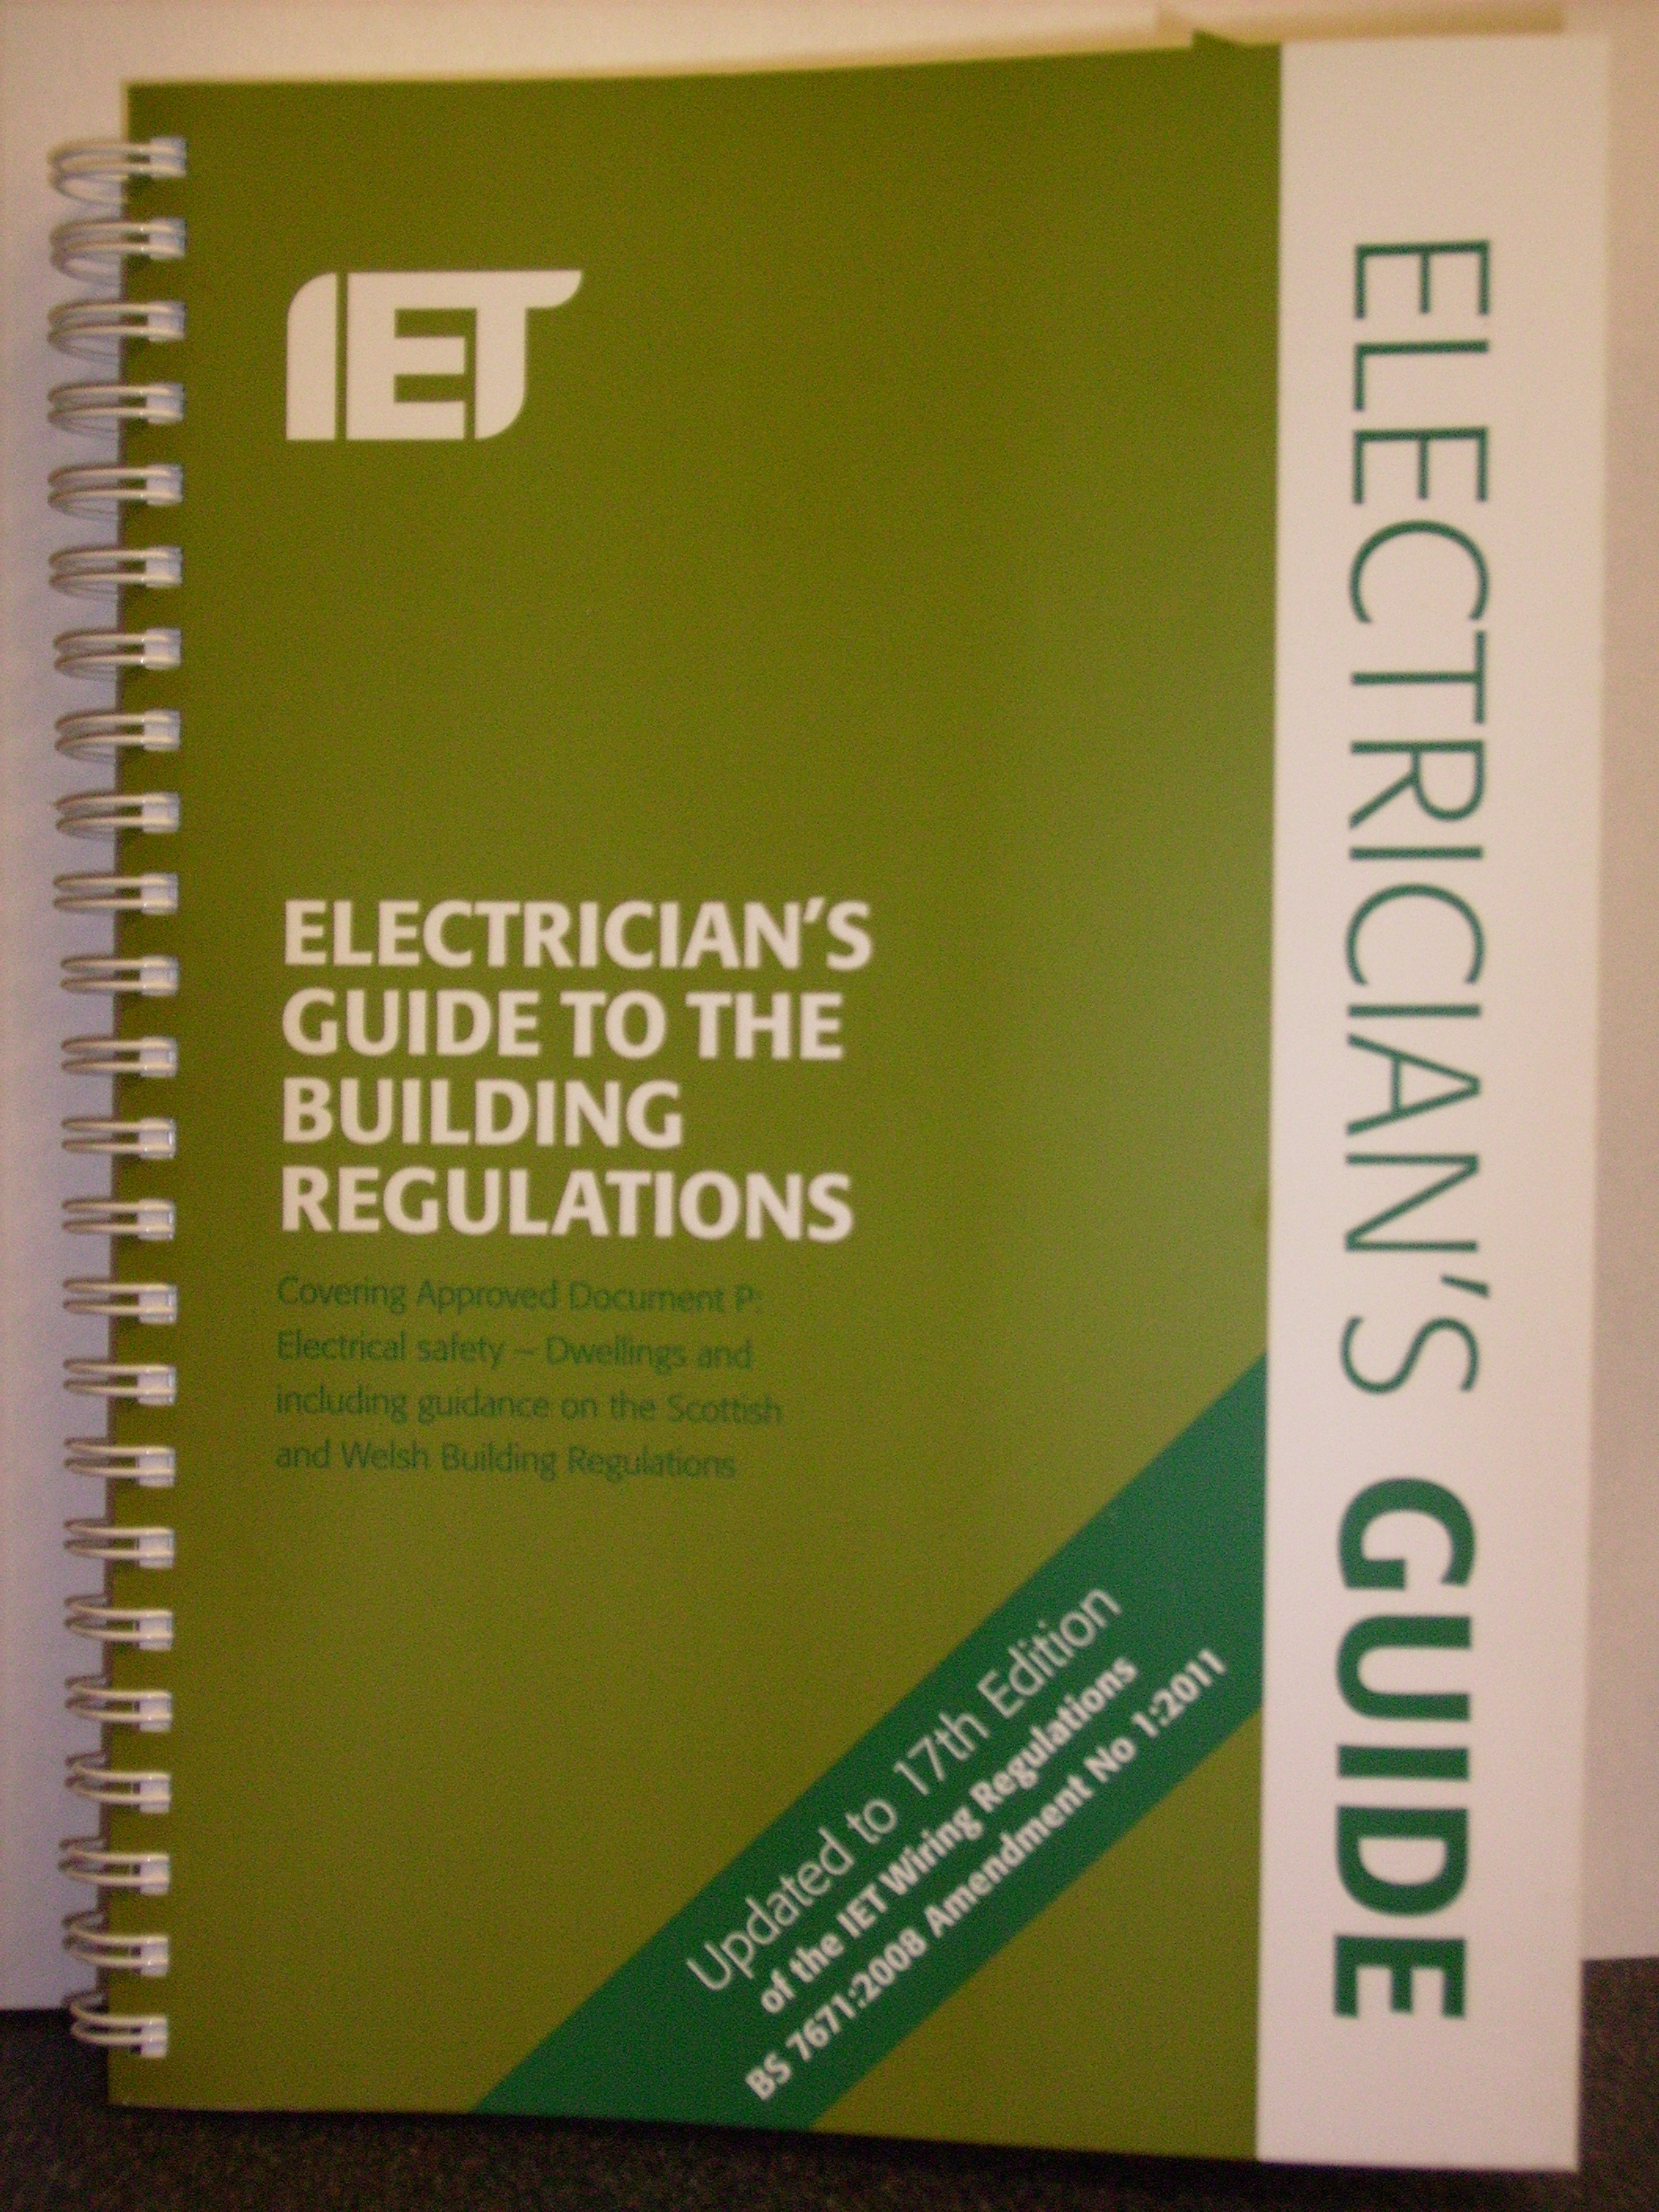 Iet On Site Guide 17th Edition The Complete Golf Club Fitting Plan Iee Wiring Regs Fully Up To Date With Latest Amendments Of Regulations